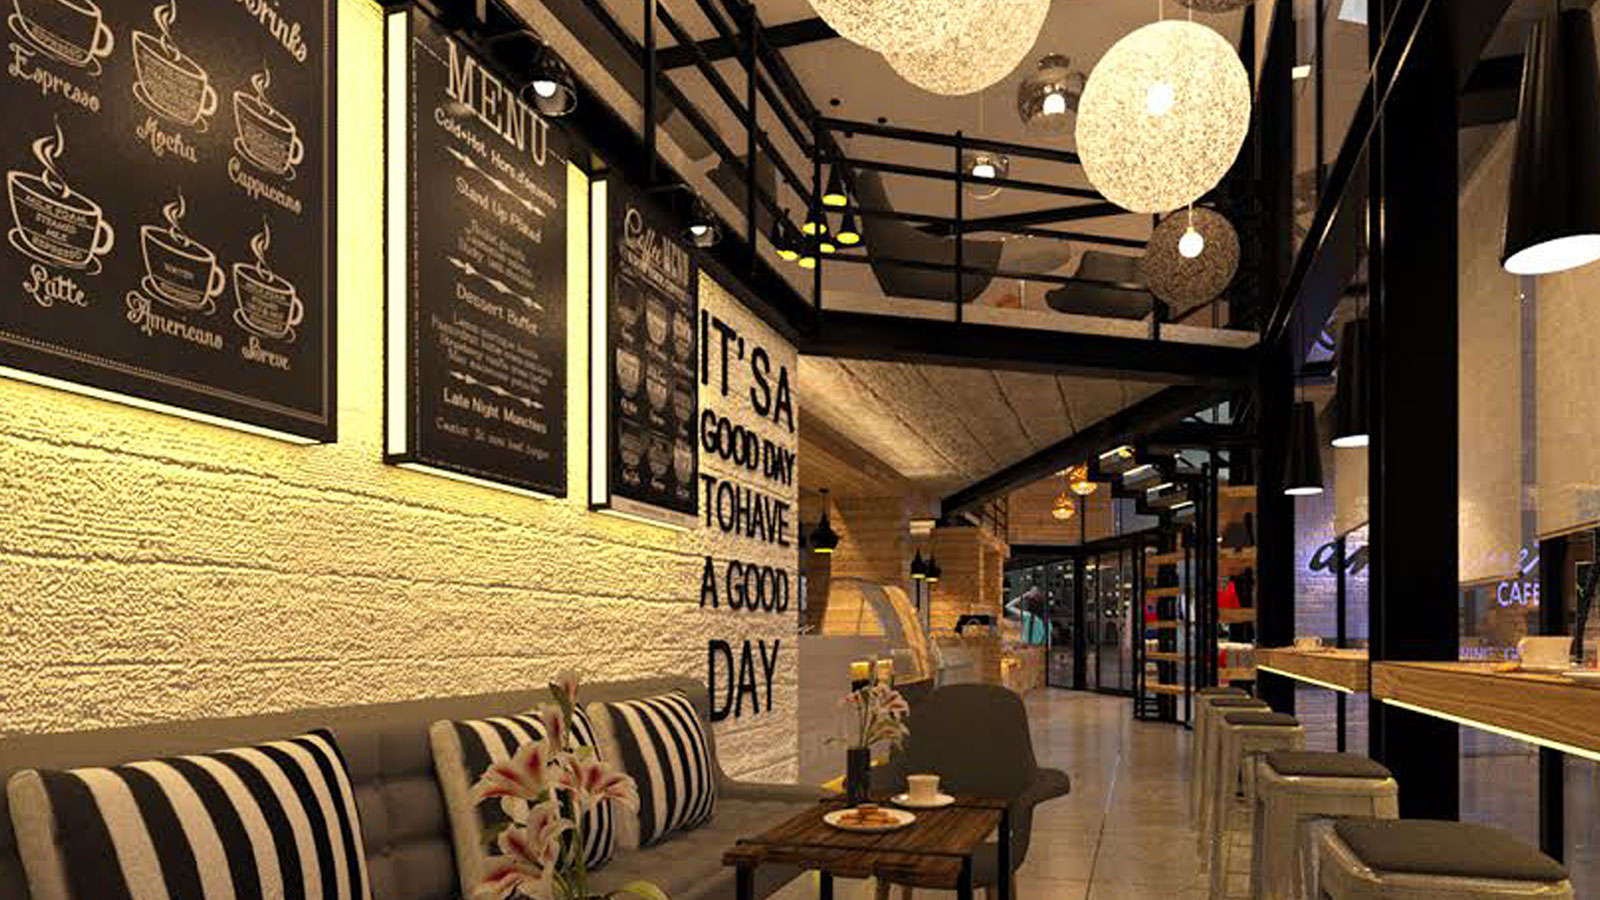 Lava Stone-grilled Seafood & Meat creations, Salads, Pastas, Sandwiches…